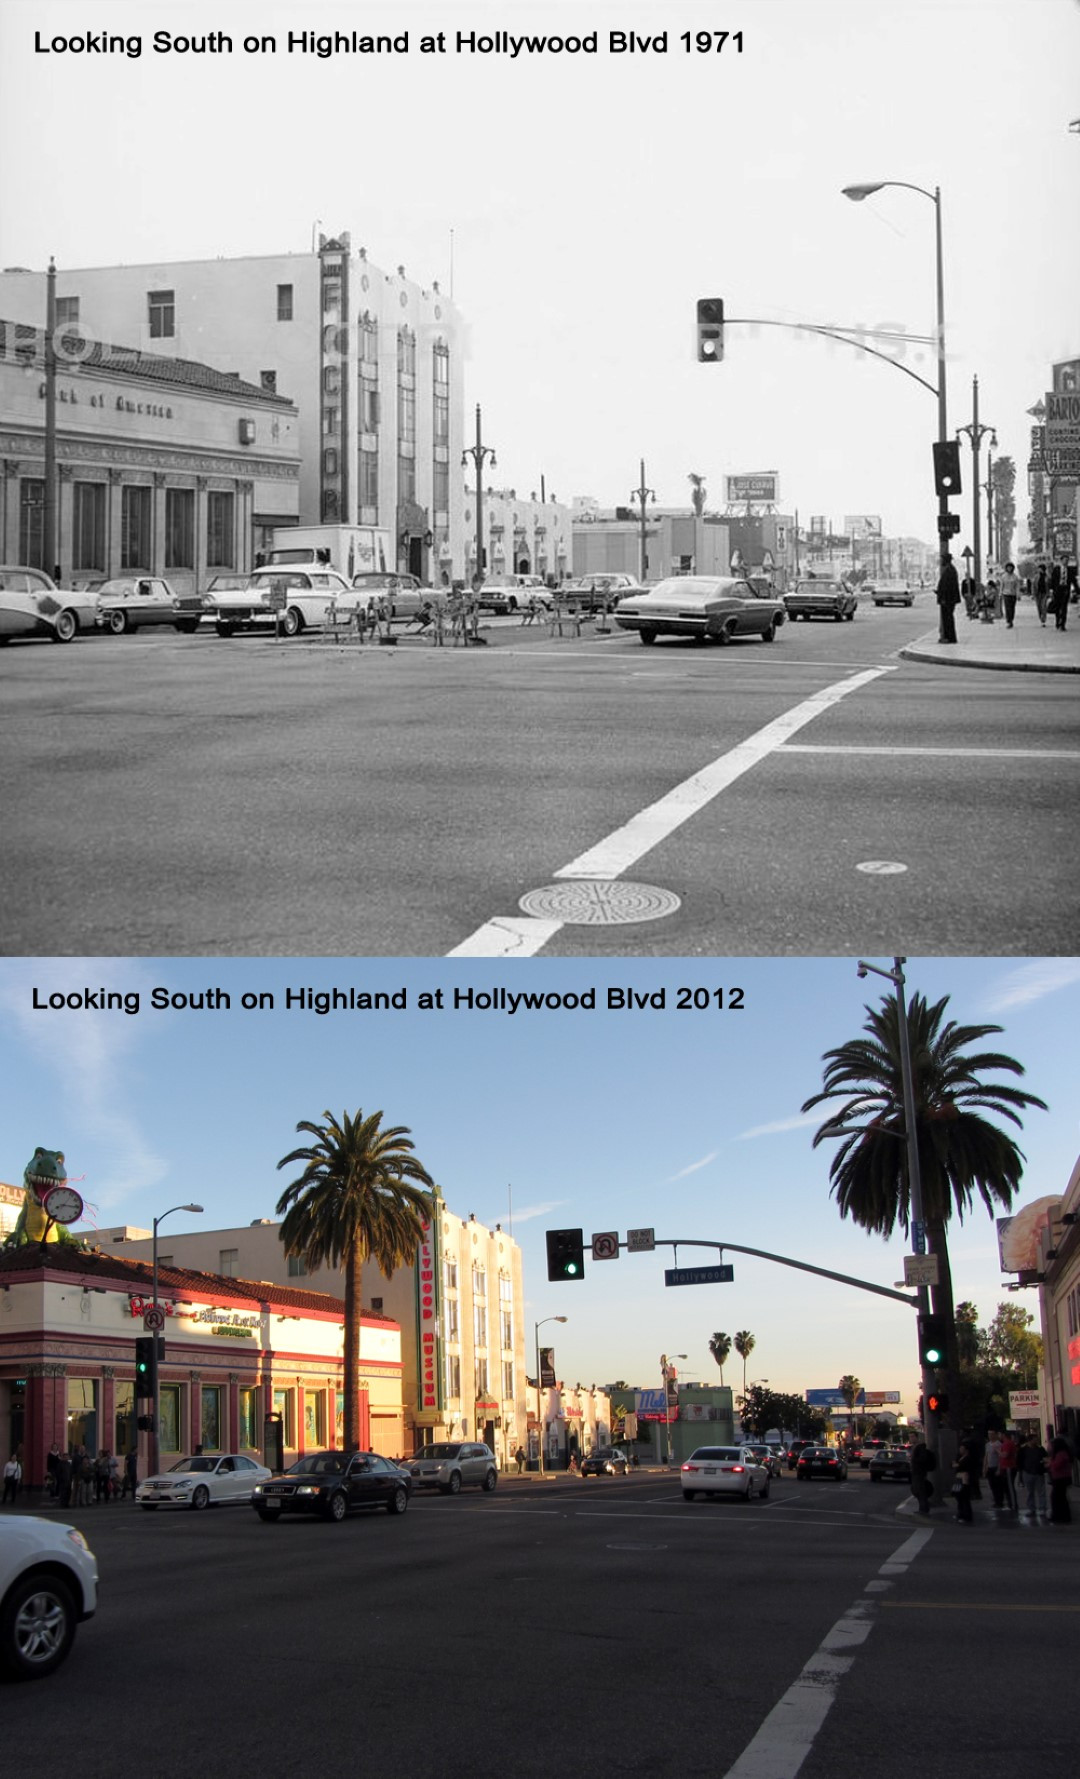 Looking south on Highland Ave. from Hollywood 1971 - 2012